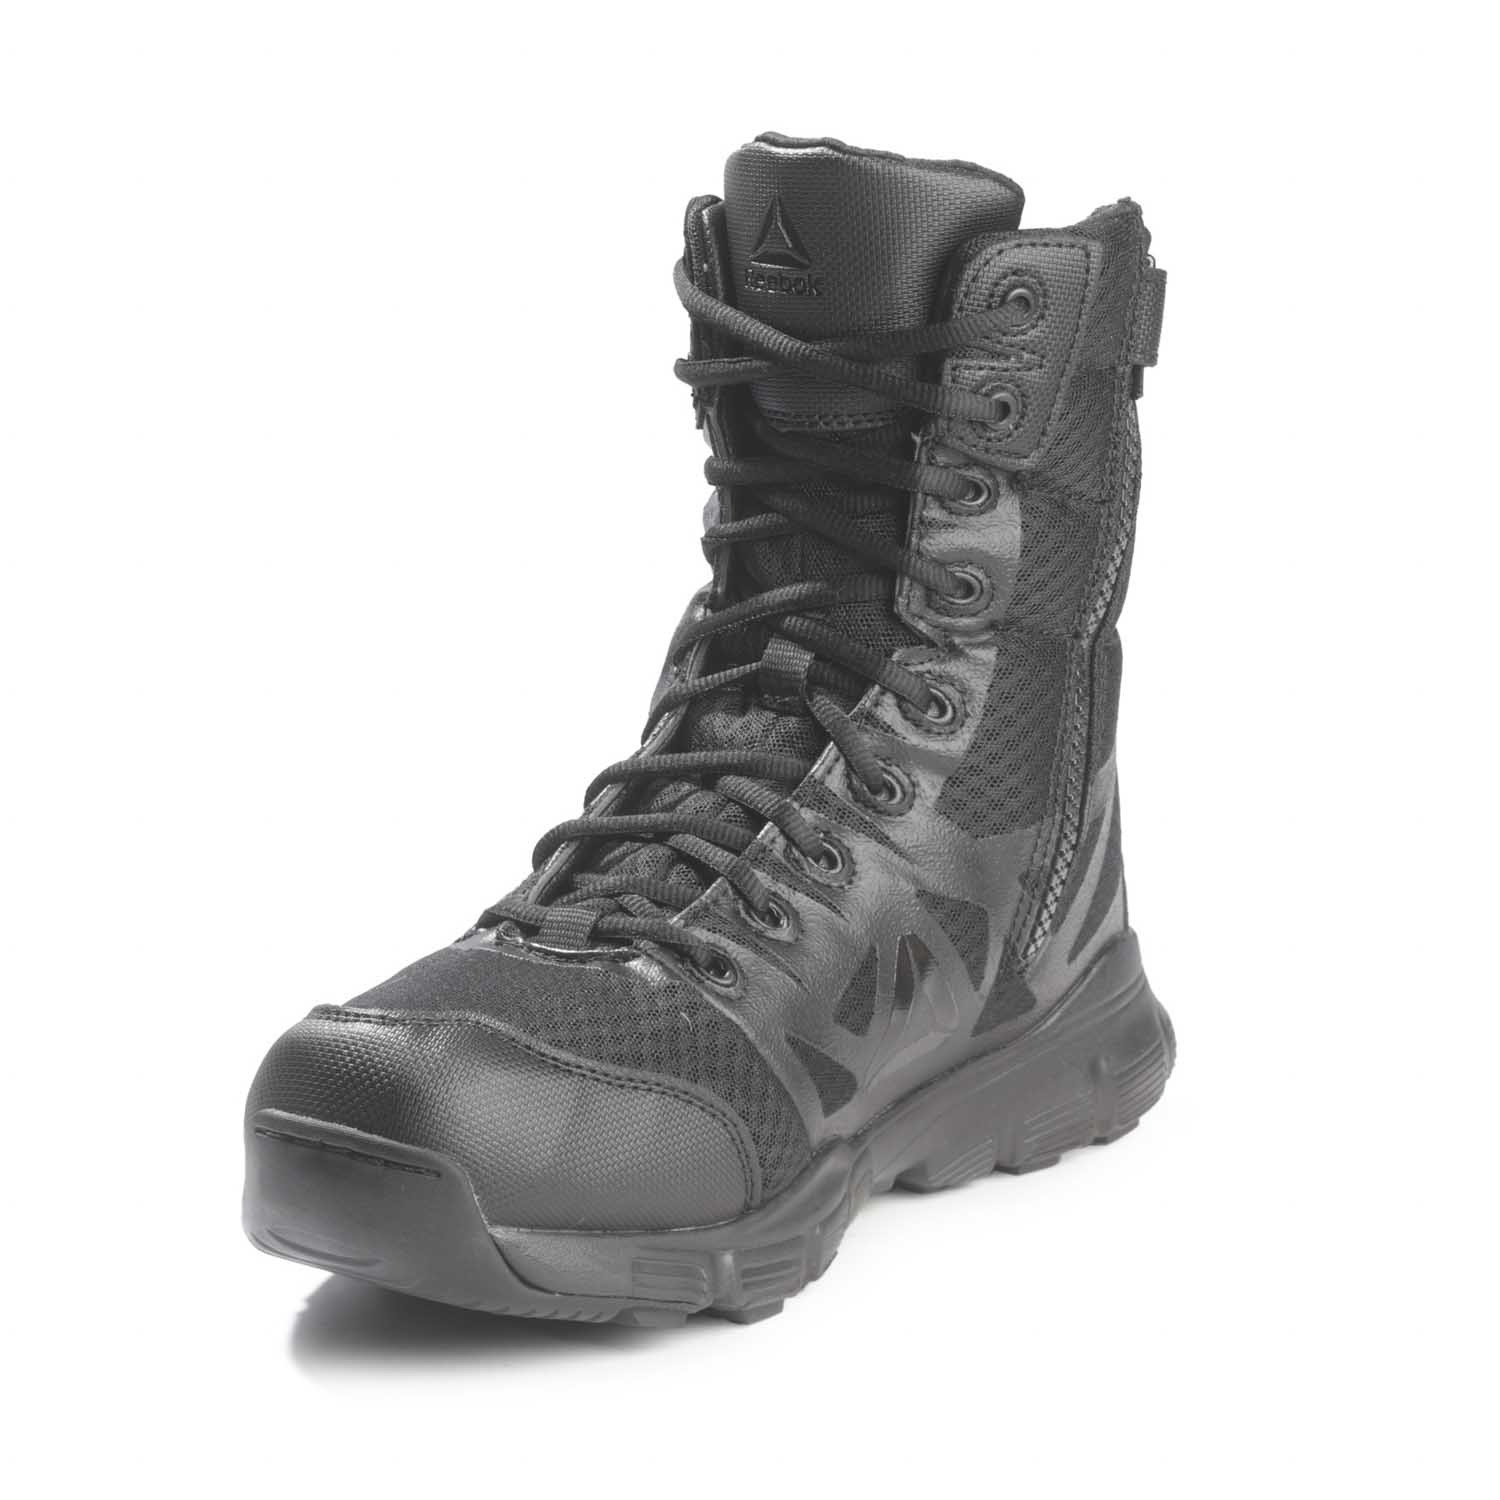 Reebok 8 Quot Dauntless Ultra Light Side Zip Duty Boots